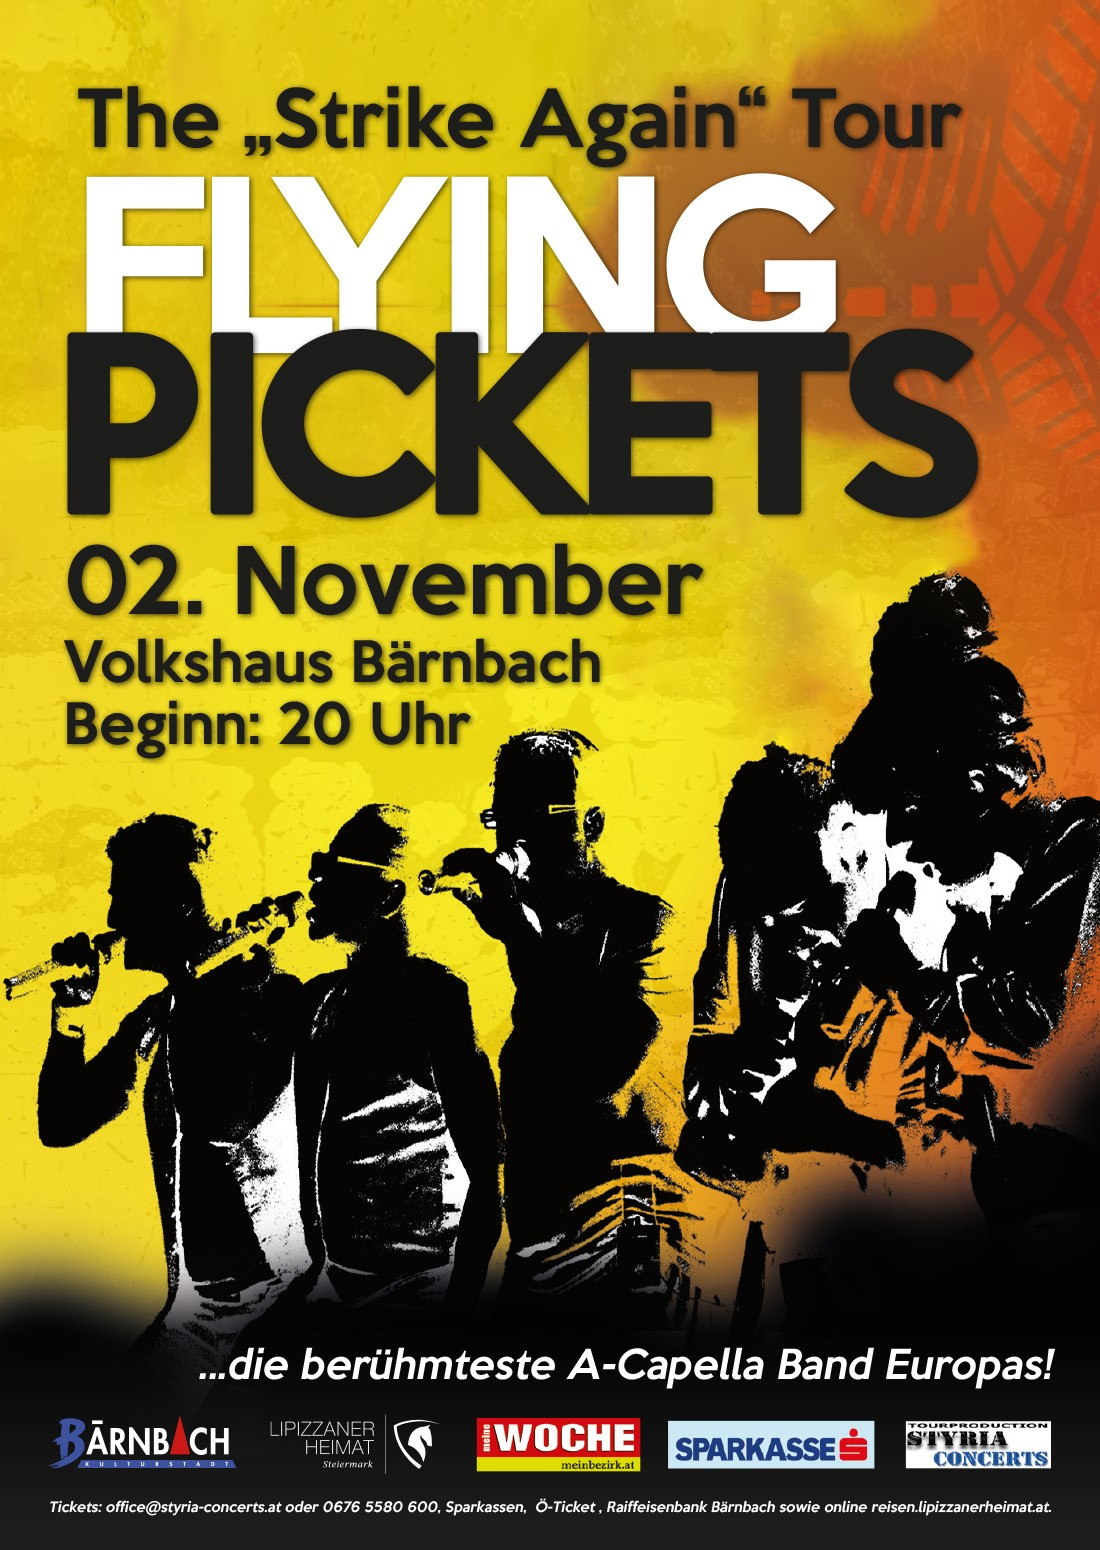 Flying pickets 02